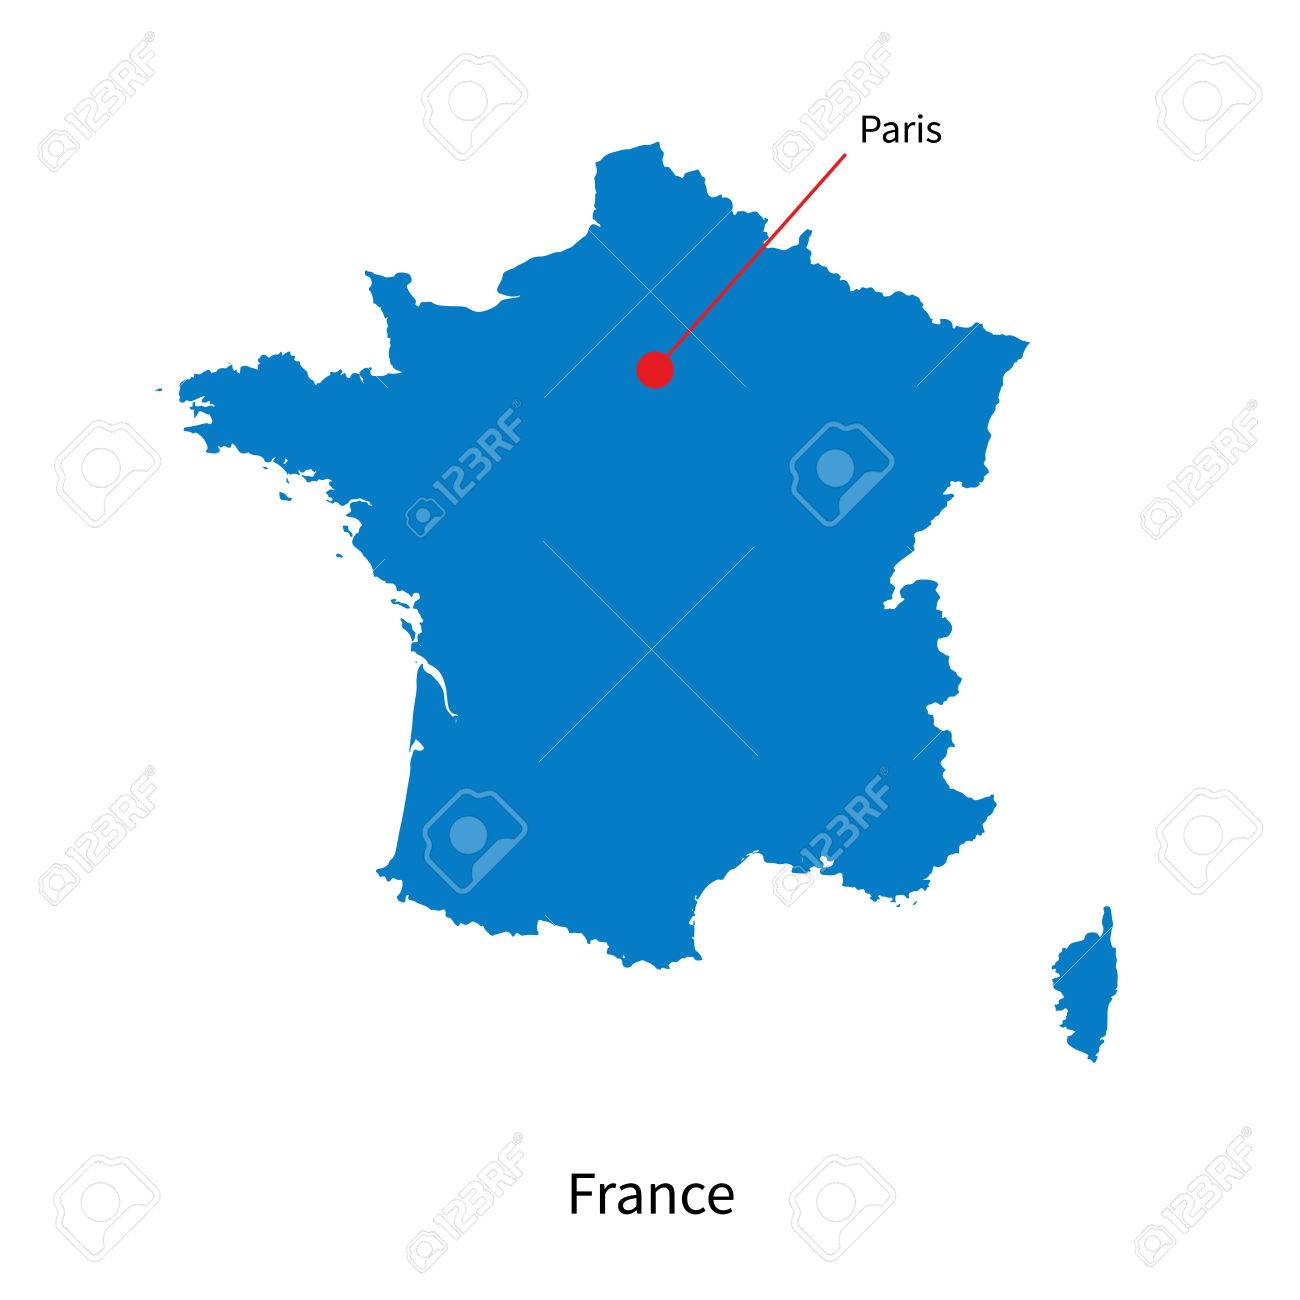 Map Of France With Paris.Detailed Map Of France And Capital City Paris